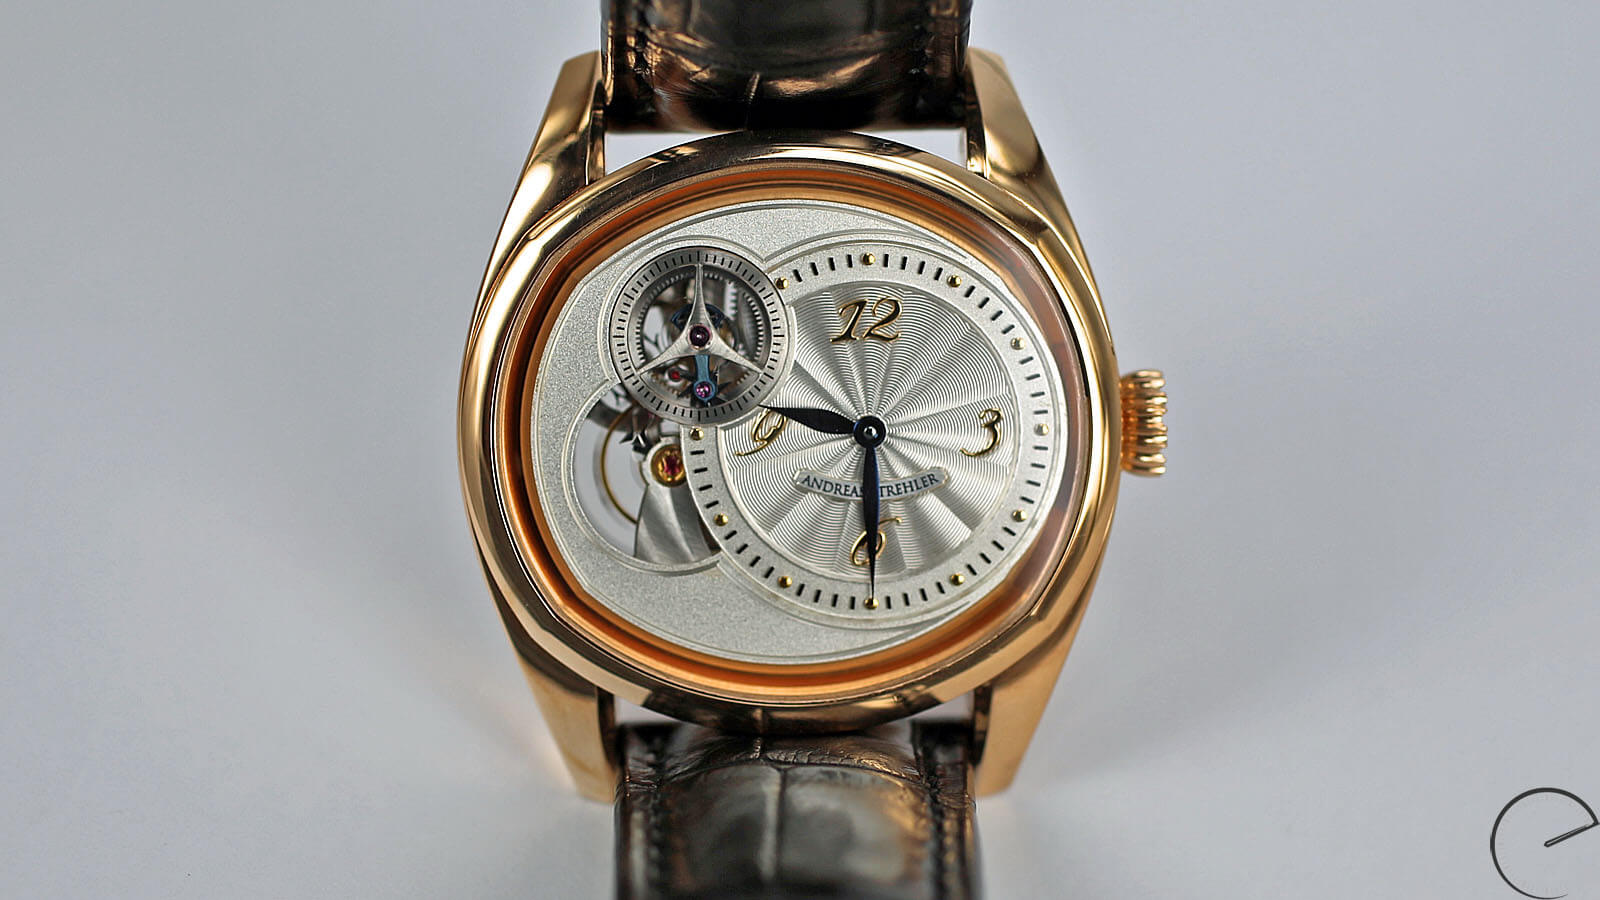 Image of Andreas Strehler Sauterelle with remontoir